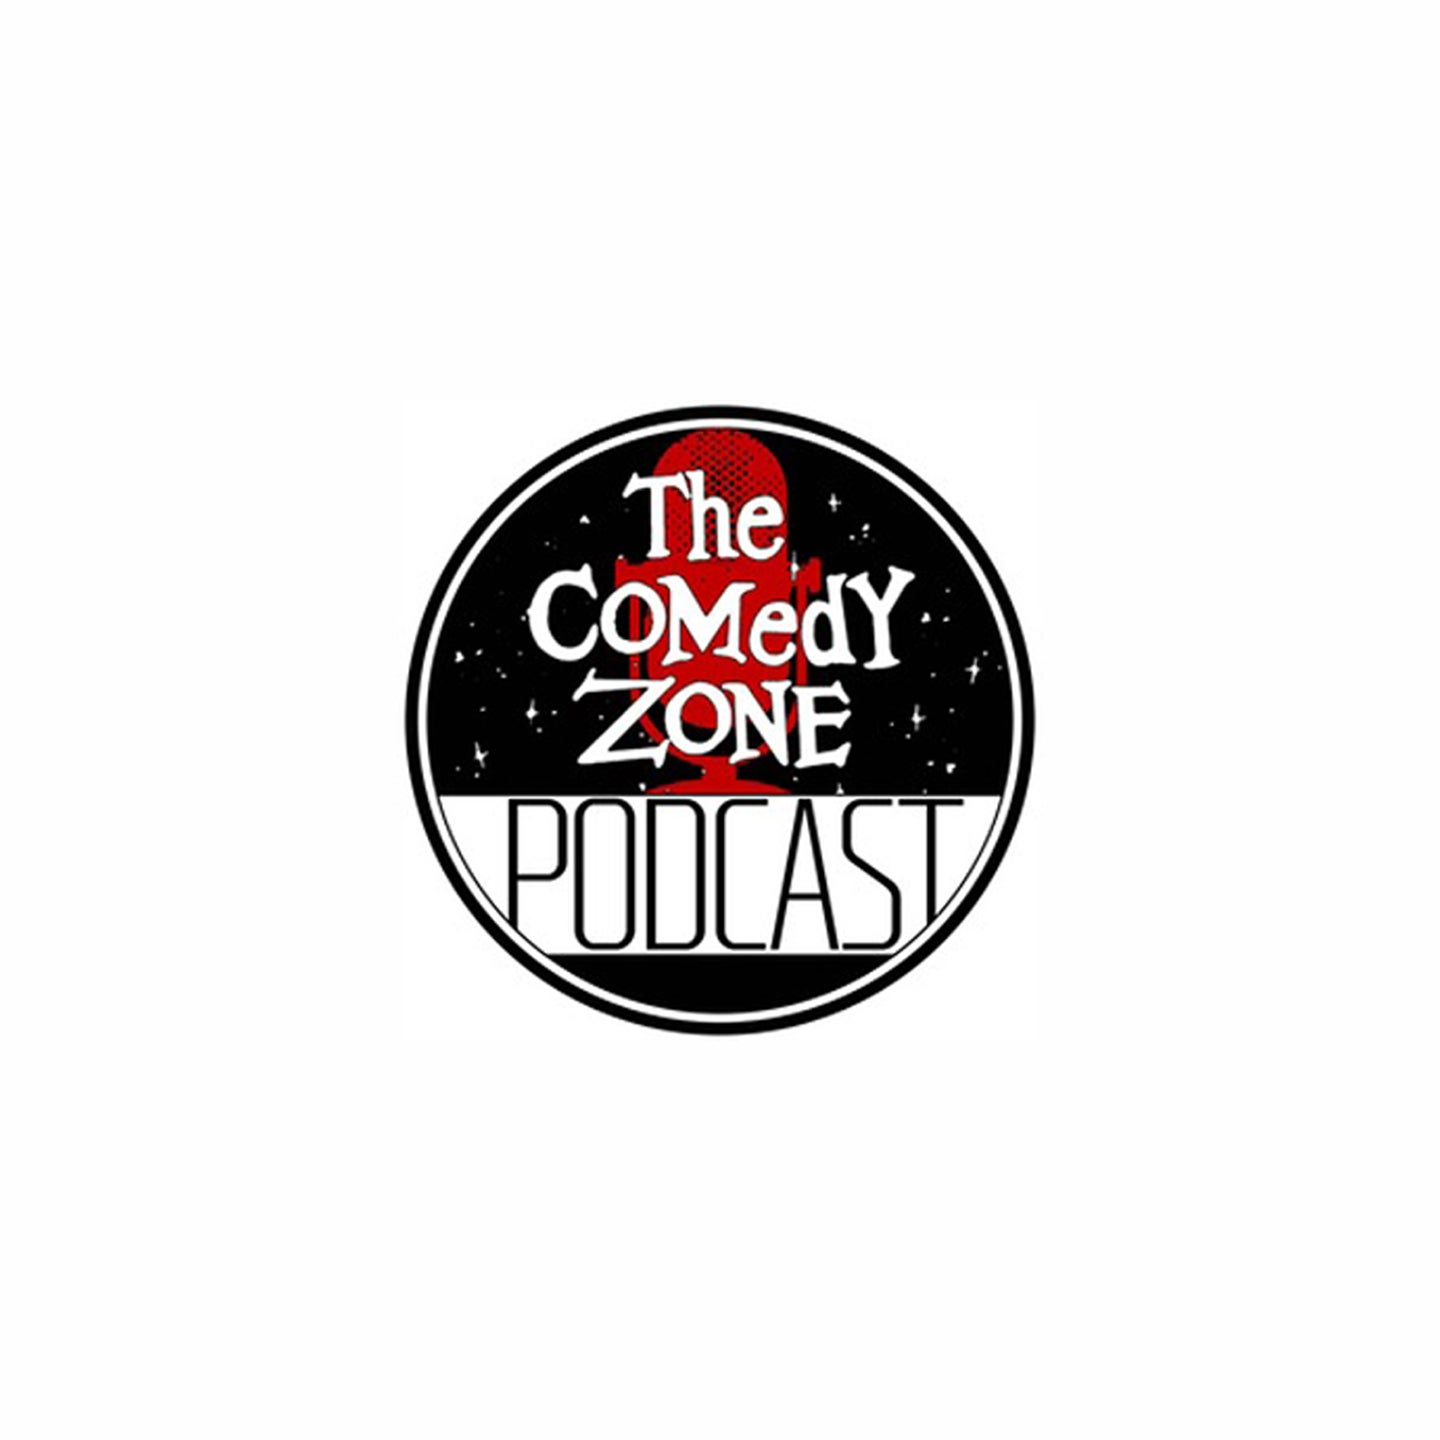 ComedyZone Podcast Recording